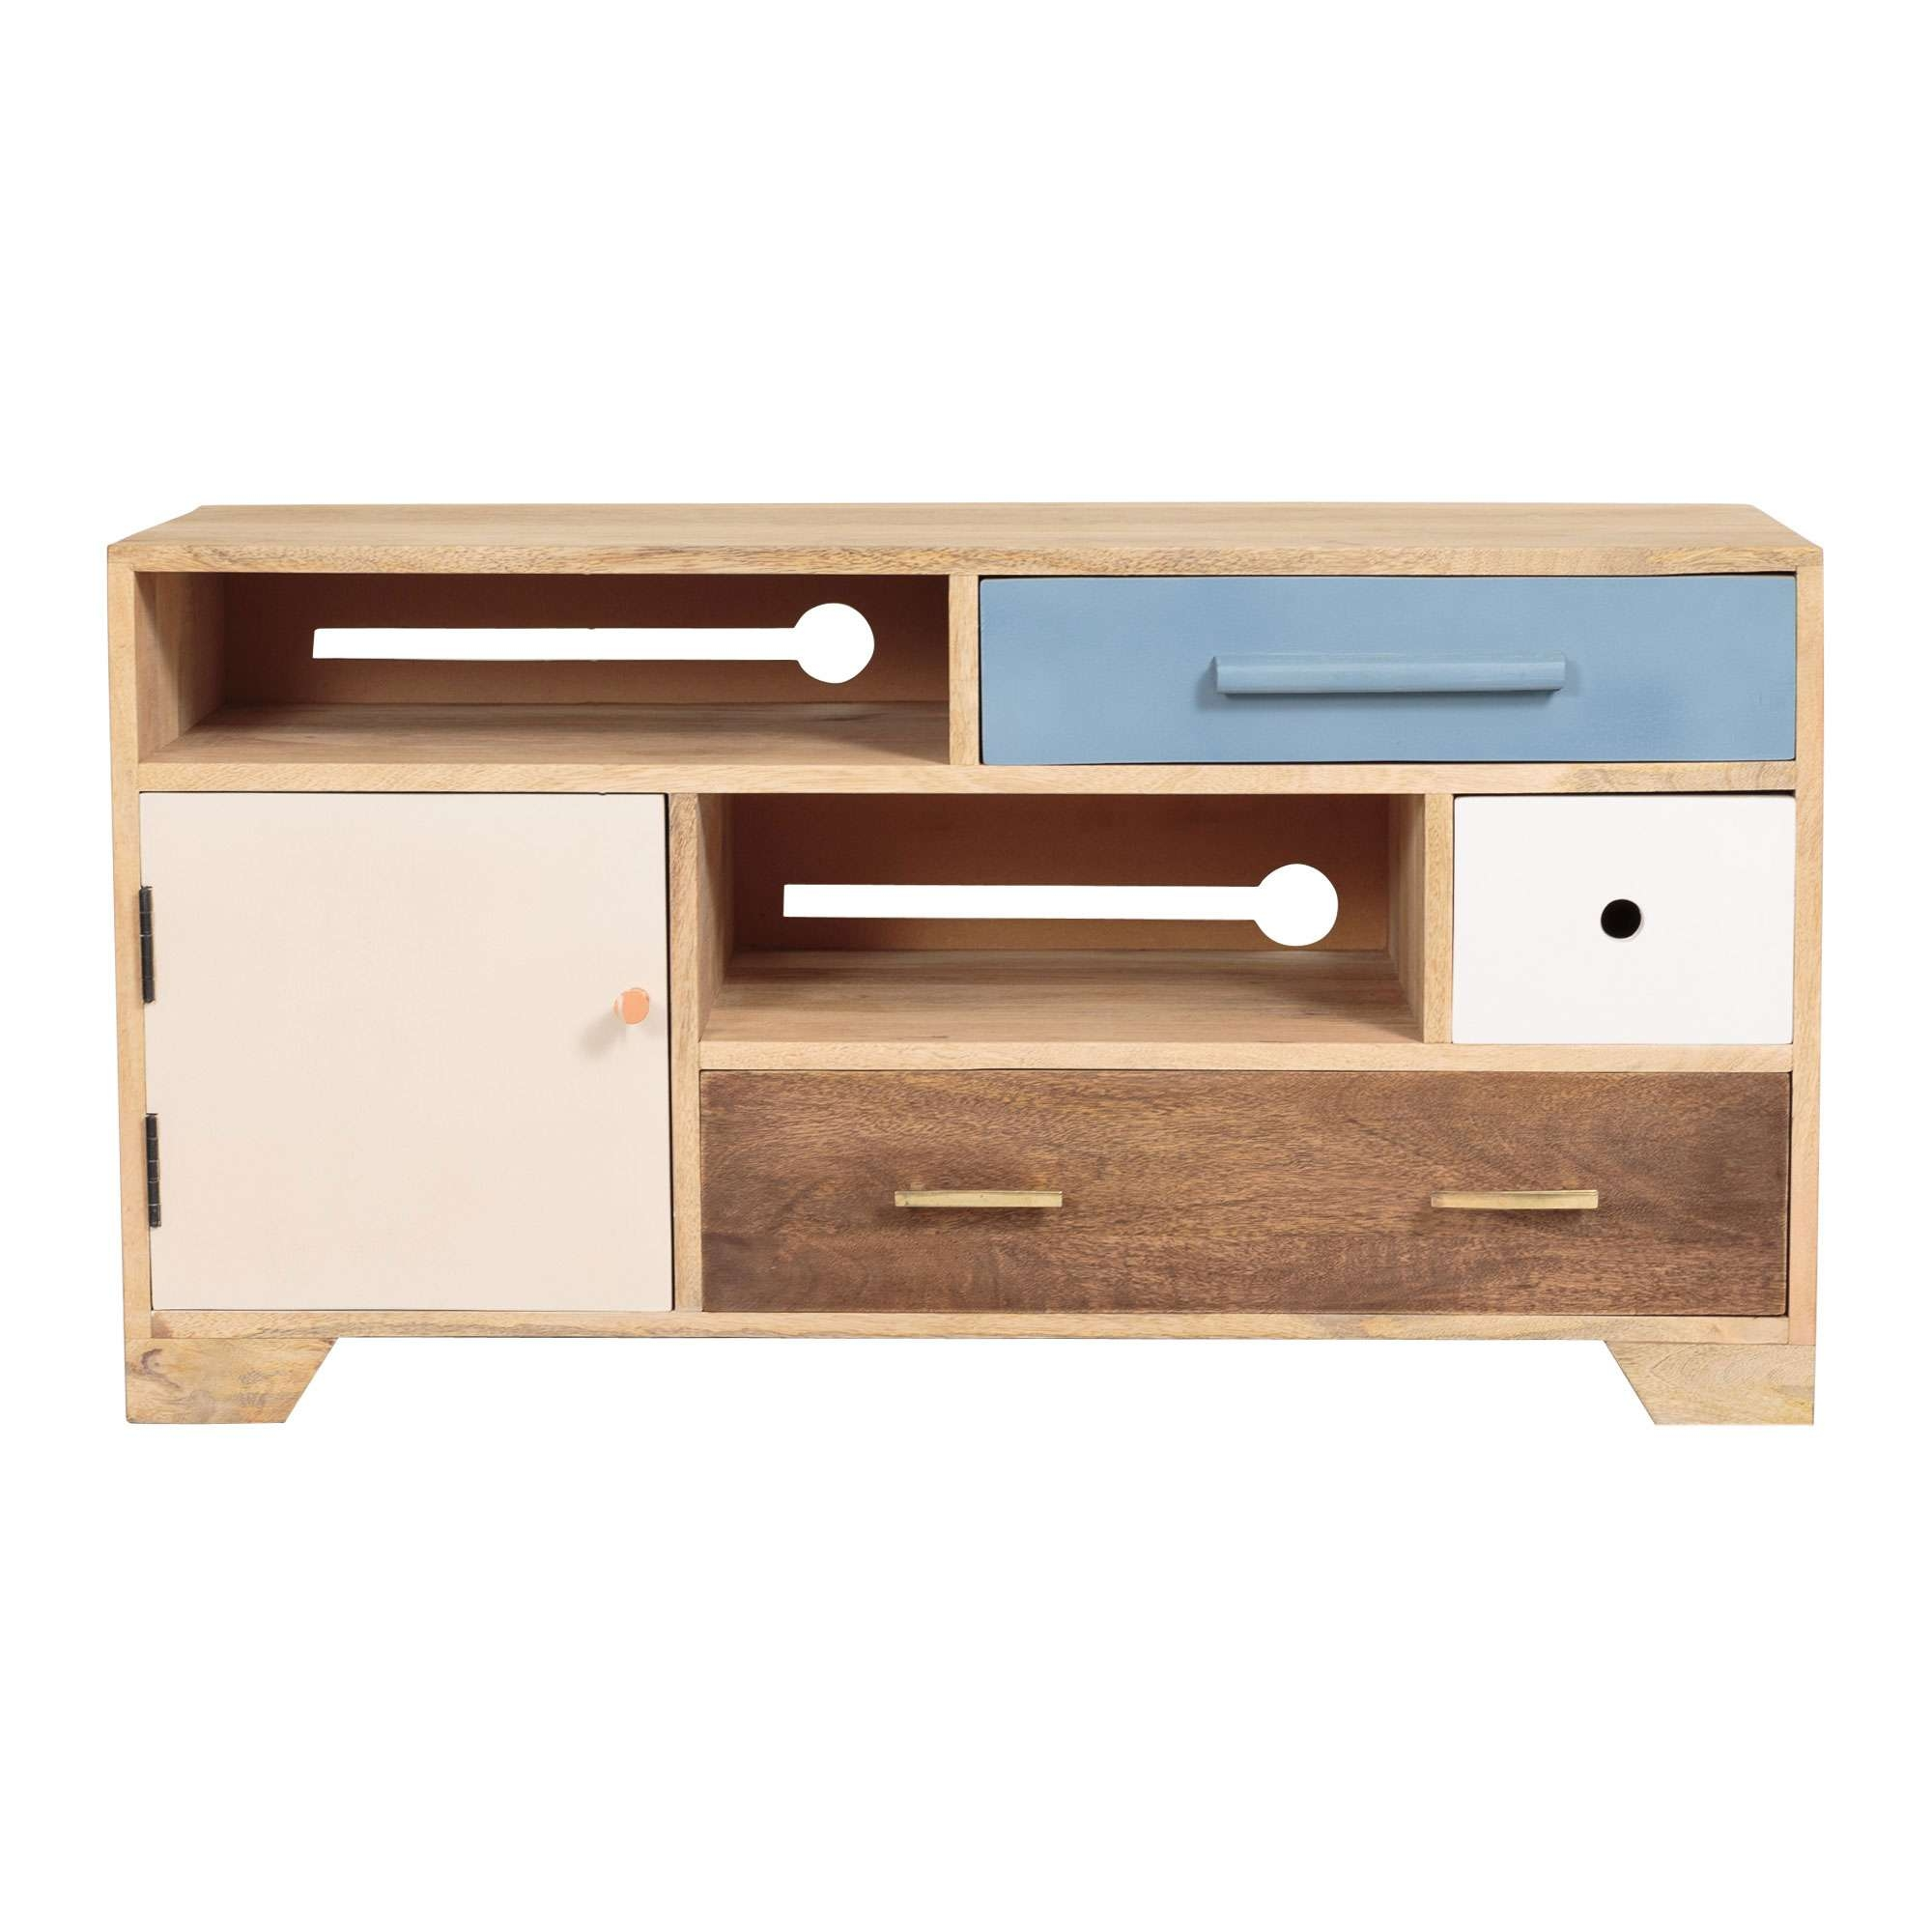 Chests & Cabinets   Furniture   Oliver Bonas   Oliver Bonas For Unusual Tv Cabinets (View 17 of 20)